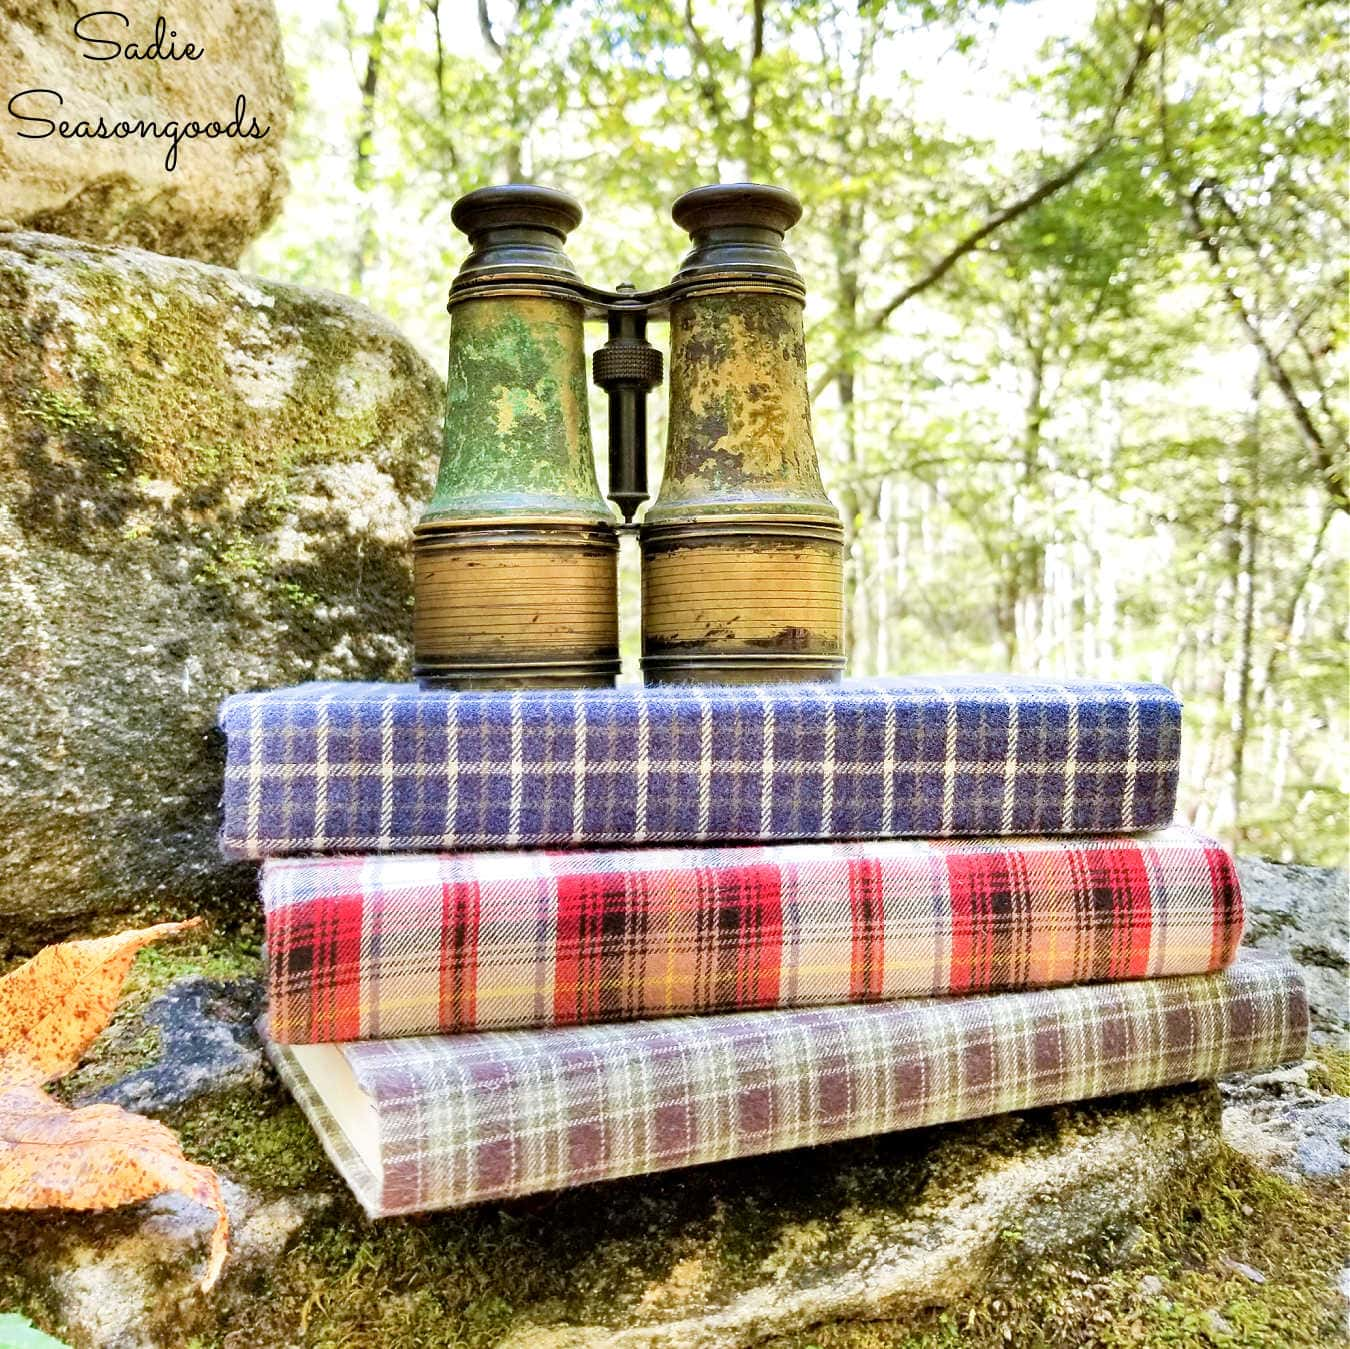 Fabric Covered Books for Cozy Home Decor